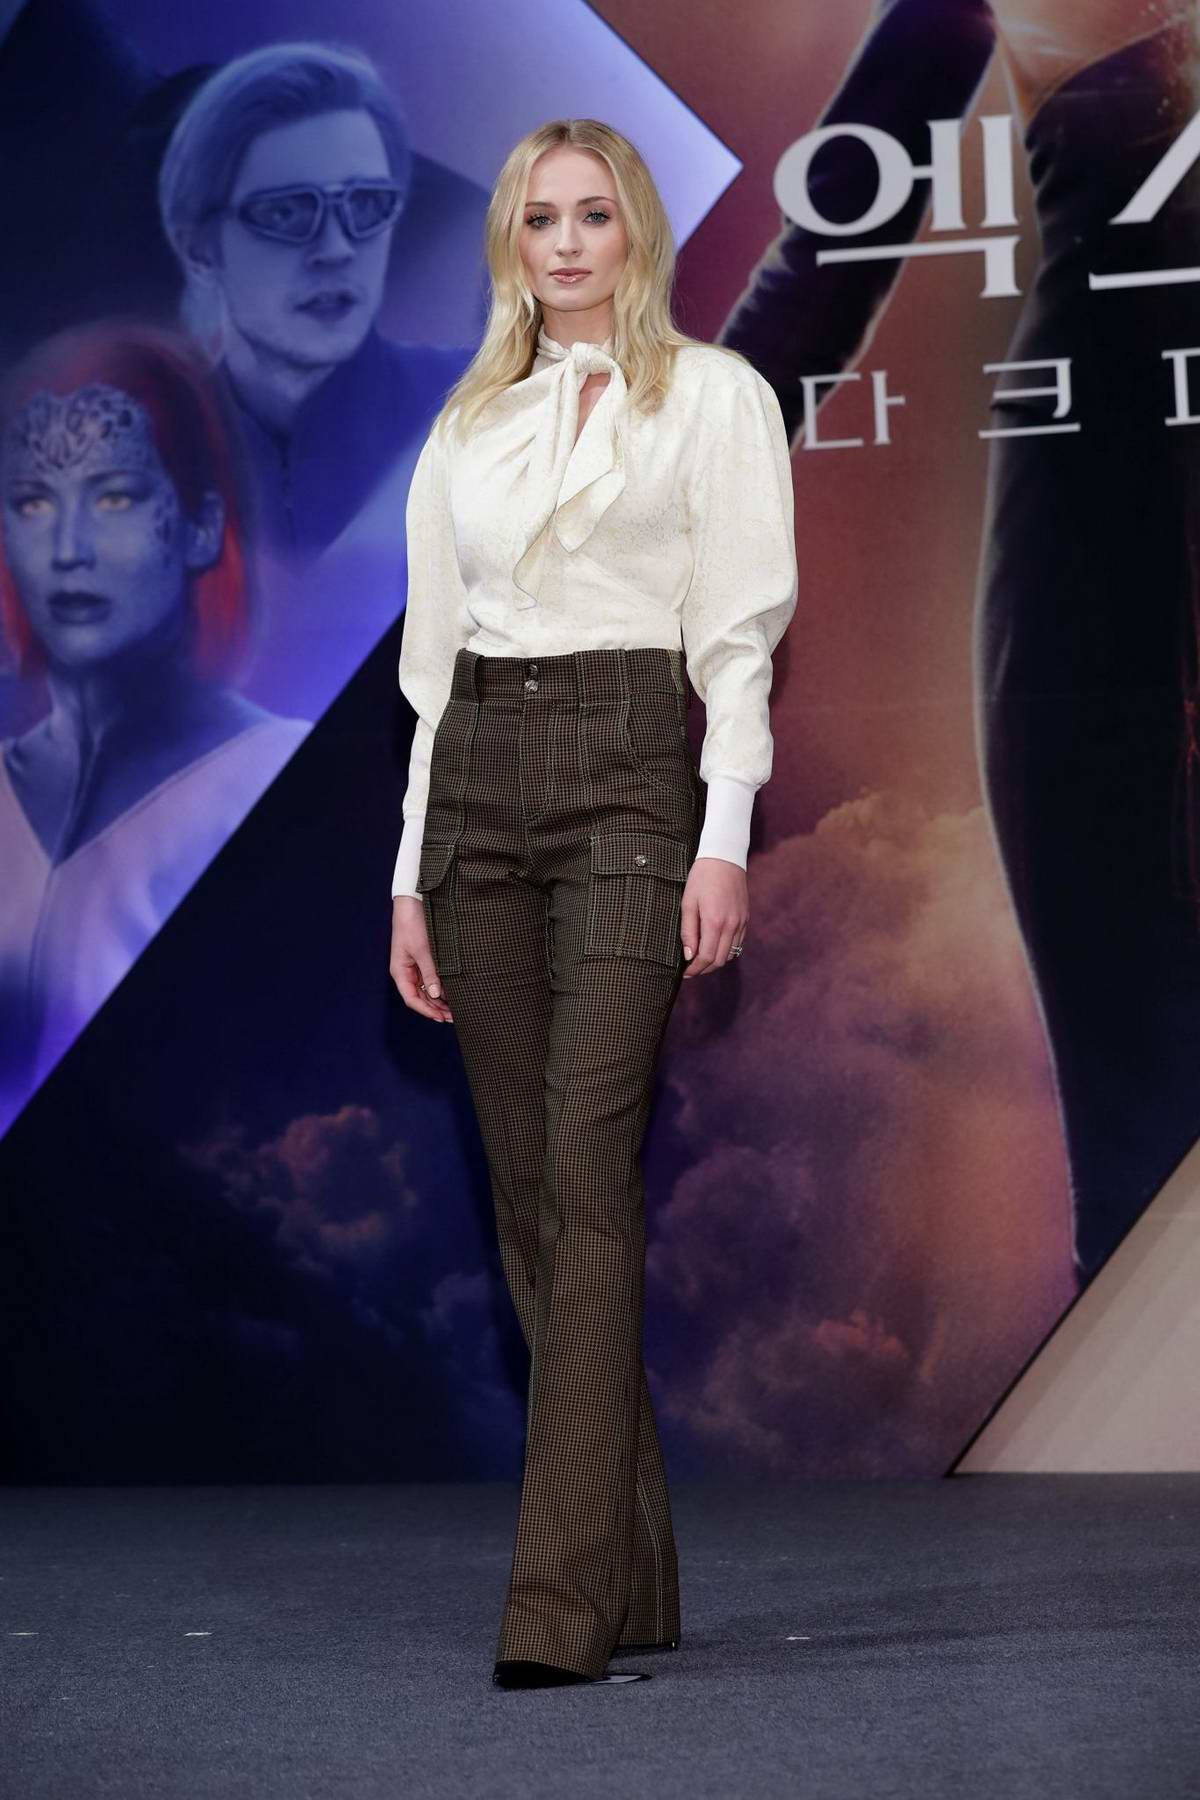 Sophie Turner attends the press conference for South Korean premiere of 'X-Men: Dark Phoenix' in Seoul, South Korea